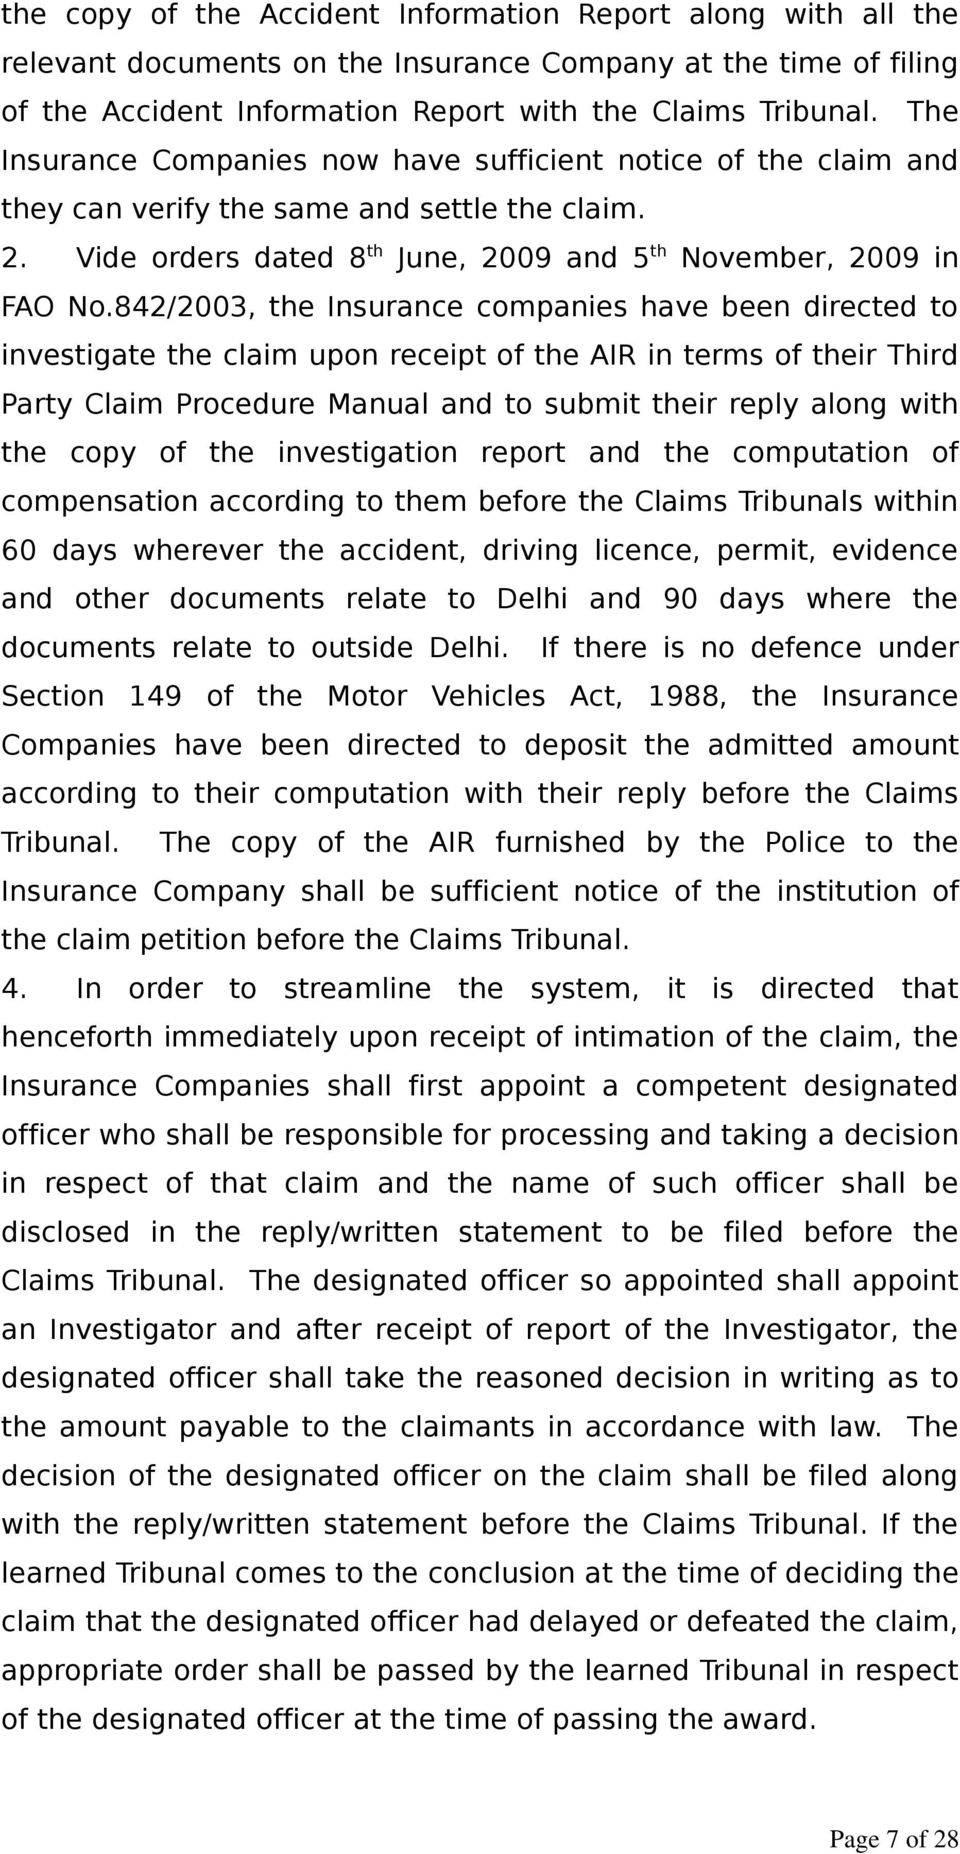 842/2003, the Insurance companies have been directed to investigate the claim upon receipt of the AIR in terms of their Third Party Claim Procedure Manual and to submit their reply along with the